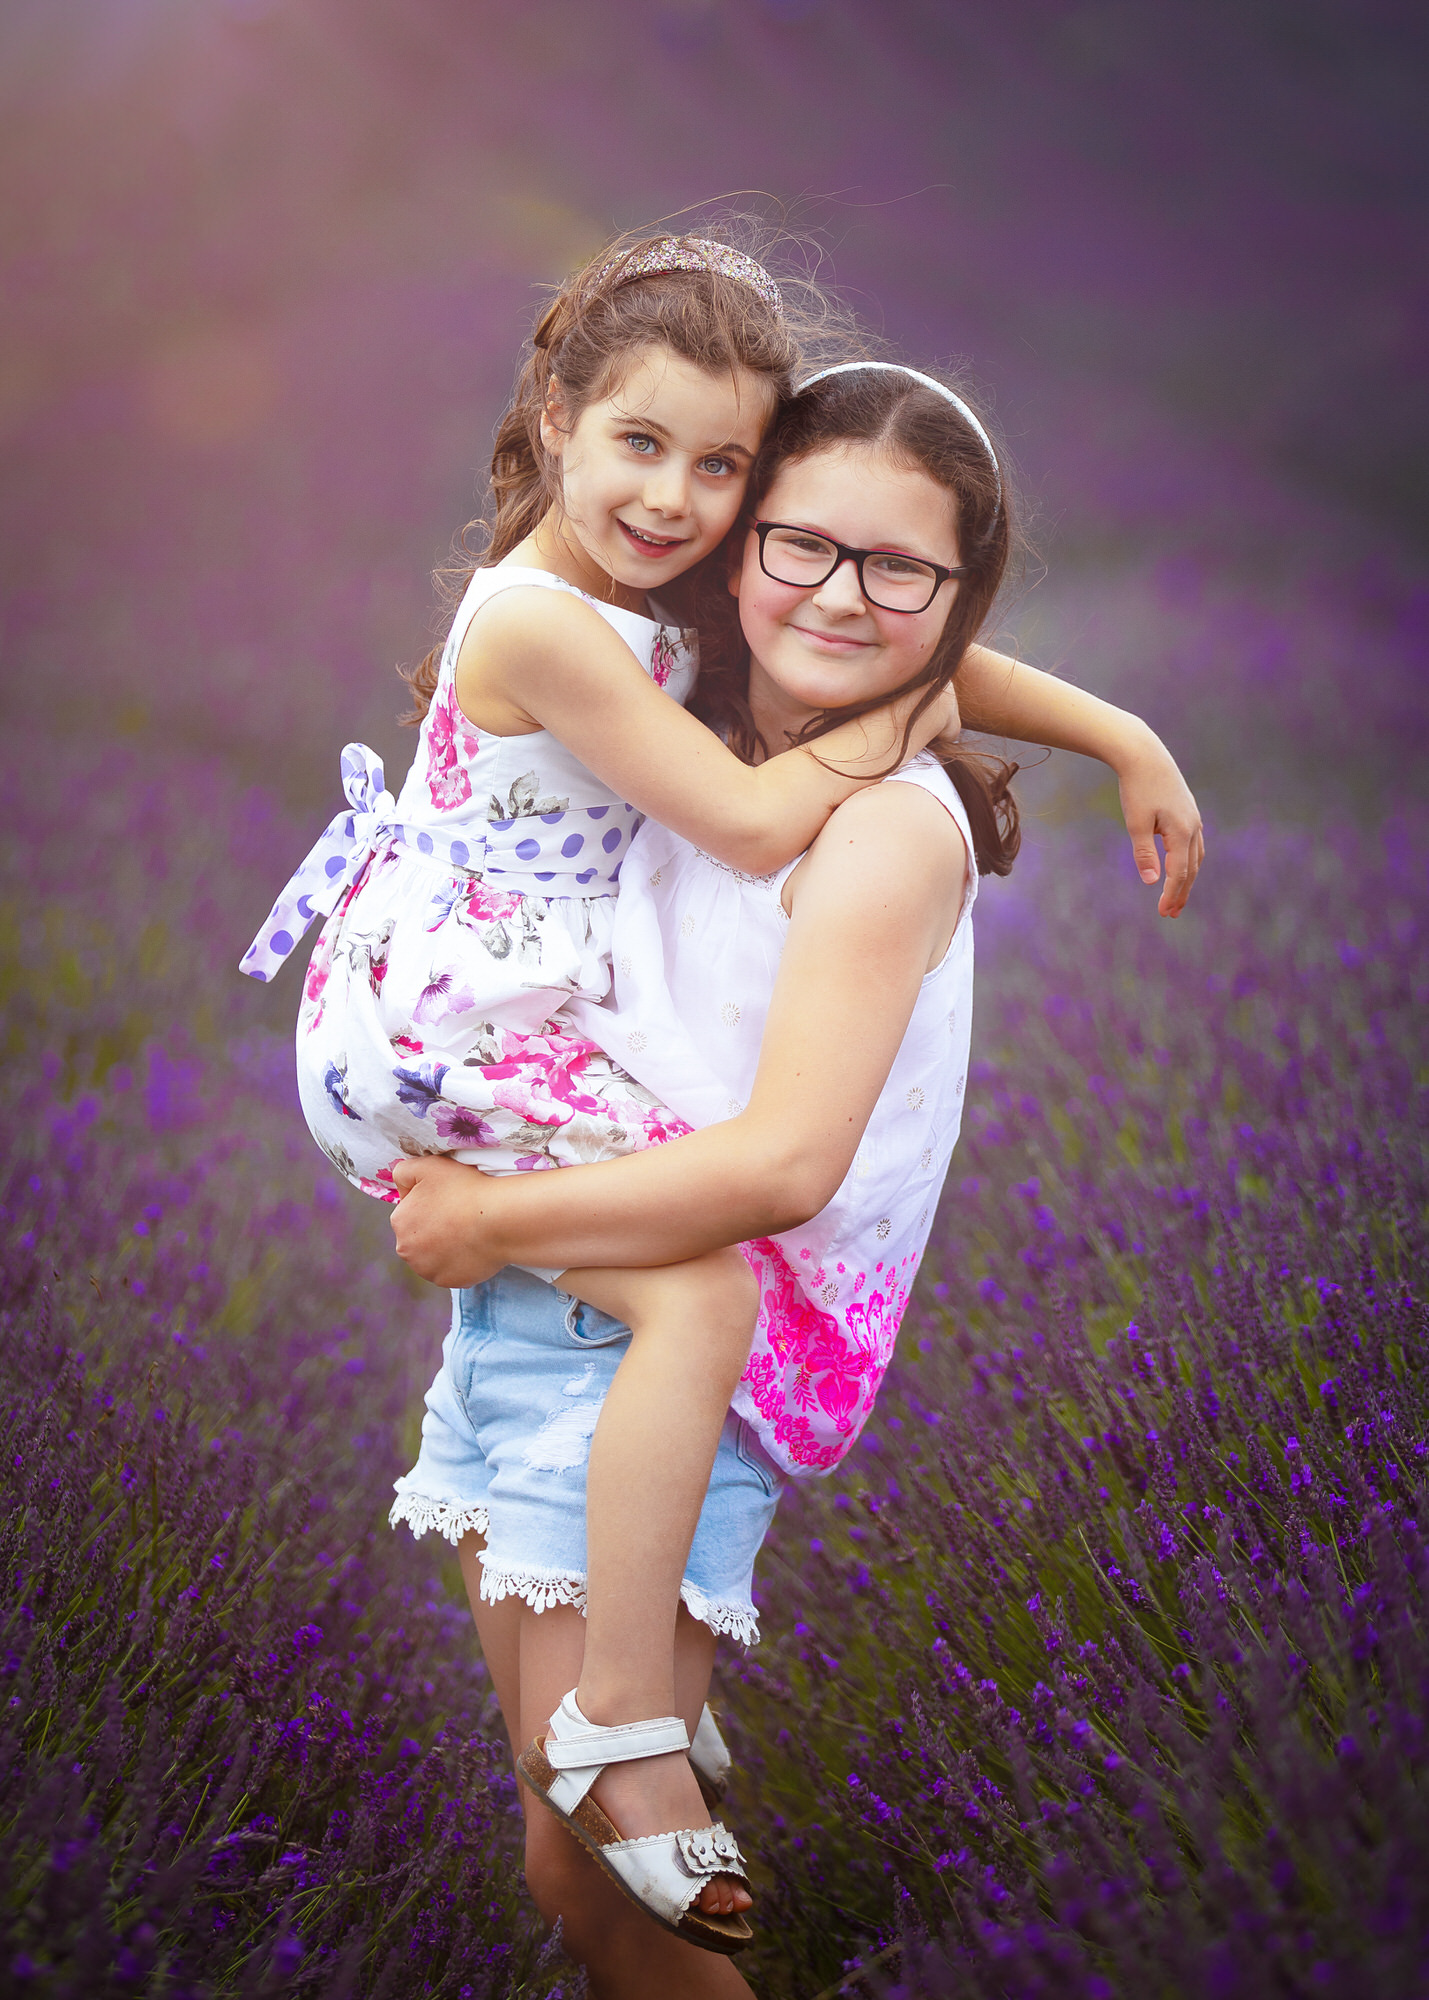 a sister carries her sibling at their family photo shoot at Hitchin lavender farm